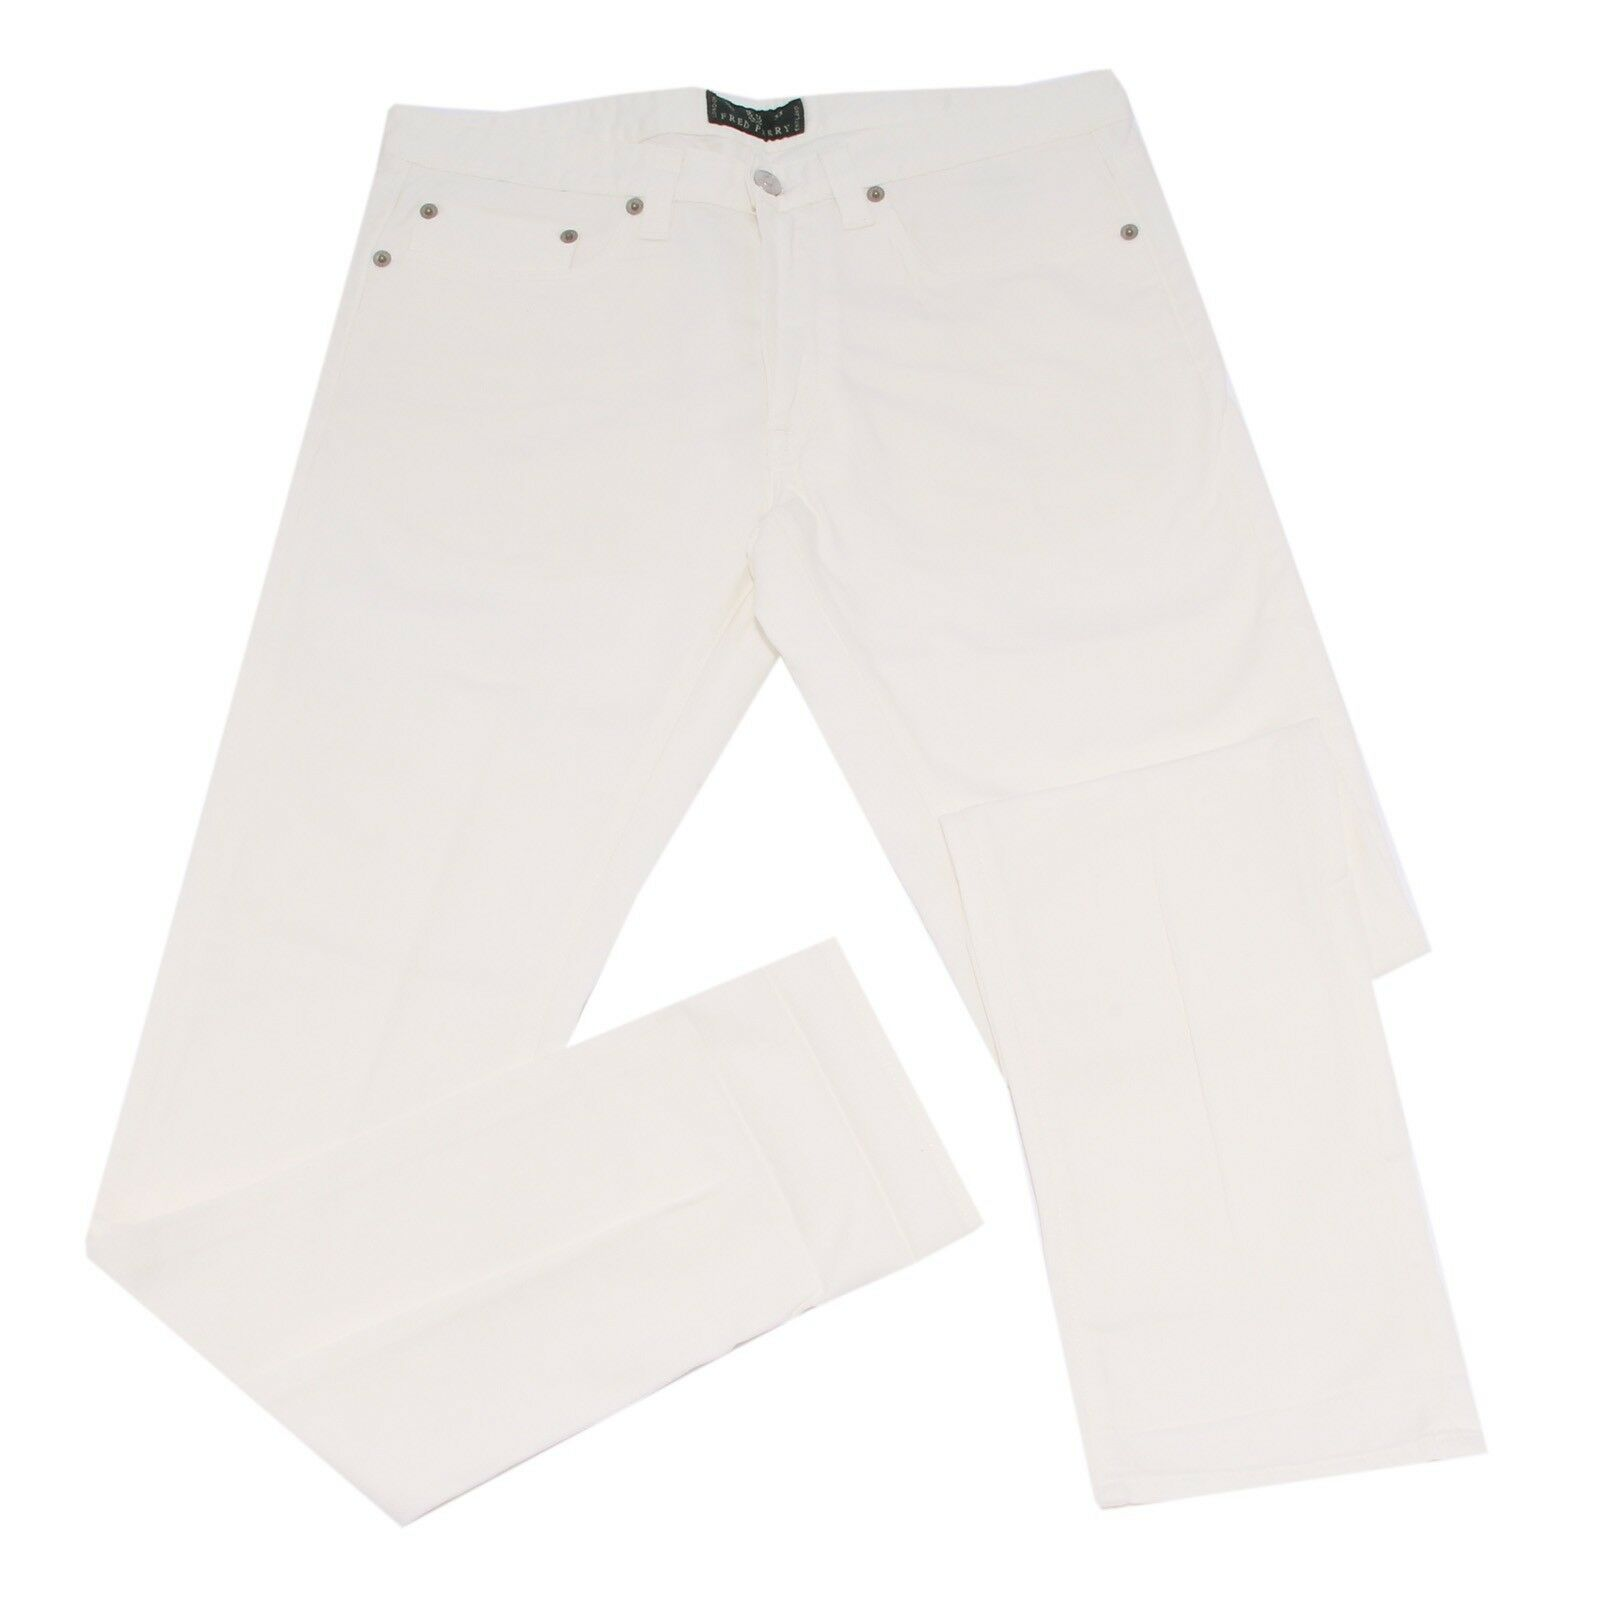 7911G jeans uomo bianco FRED PERRY PERRY PERRY denim  pantaloni trousers men f30f98